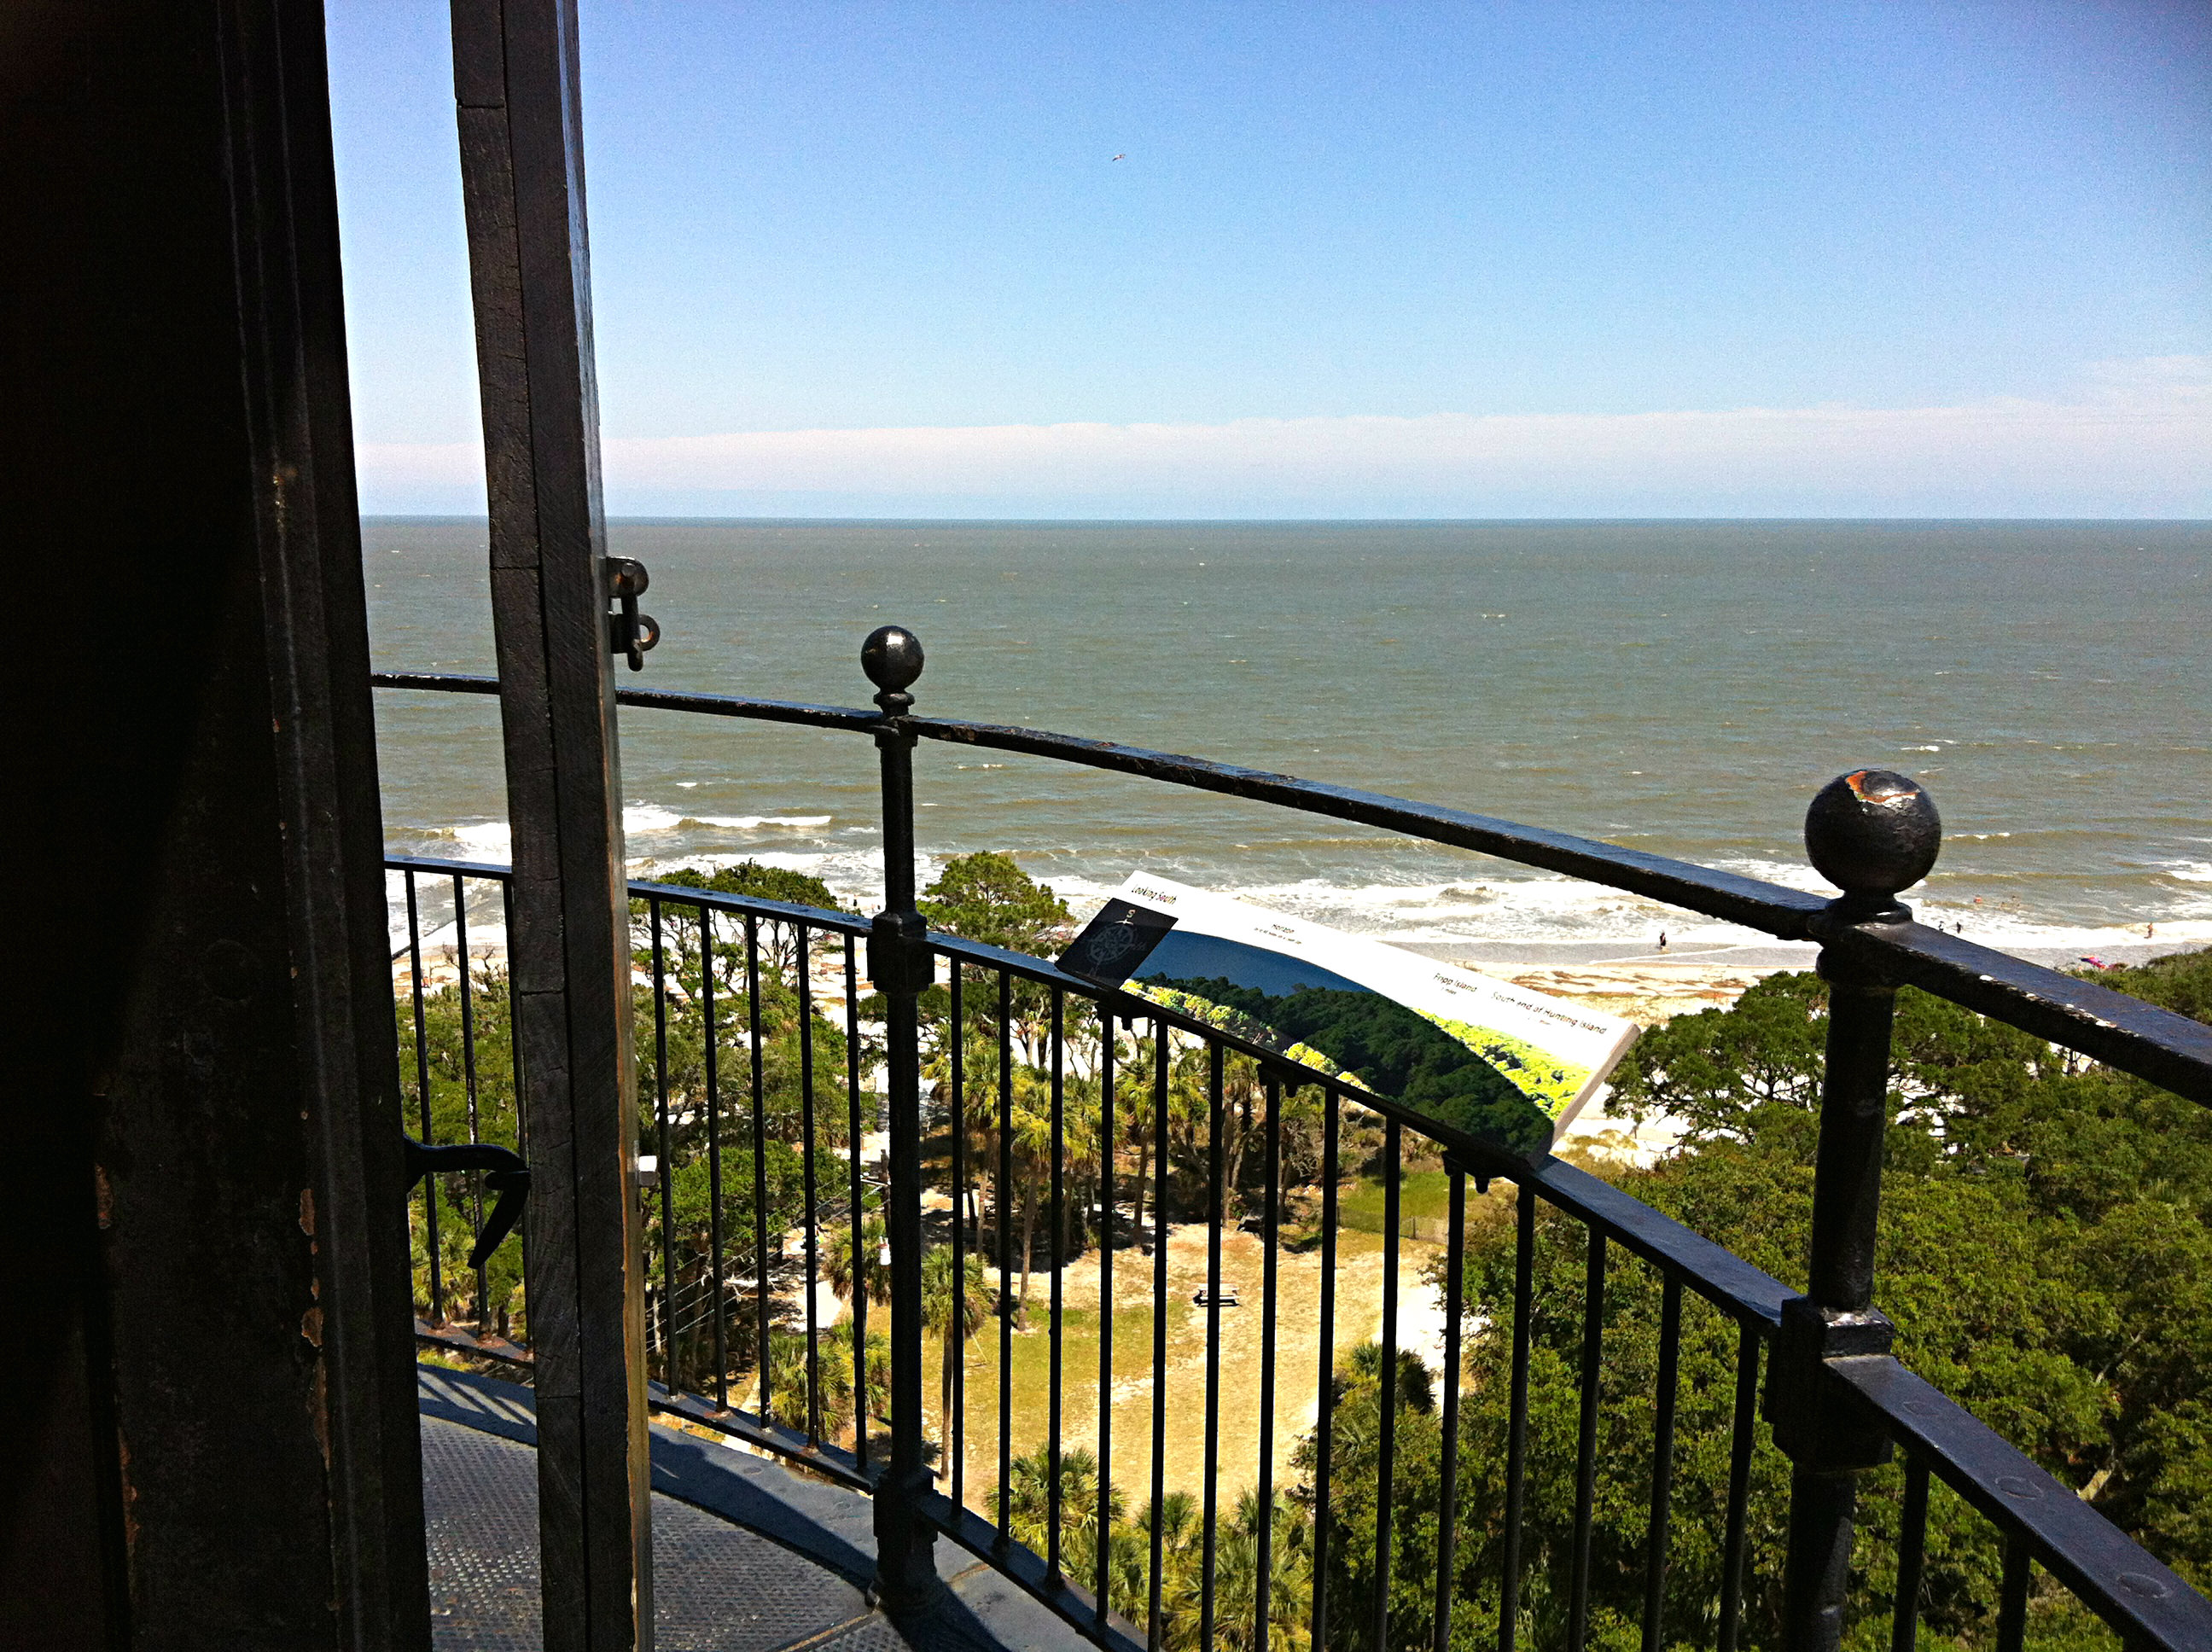 Hunting Island's Lighthouse: Up you go, step by step to the top